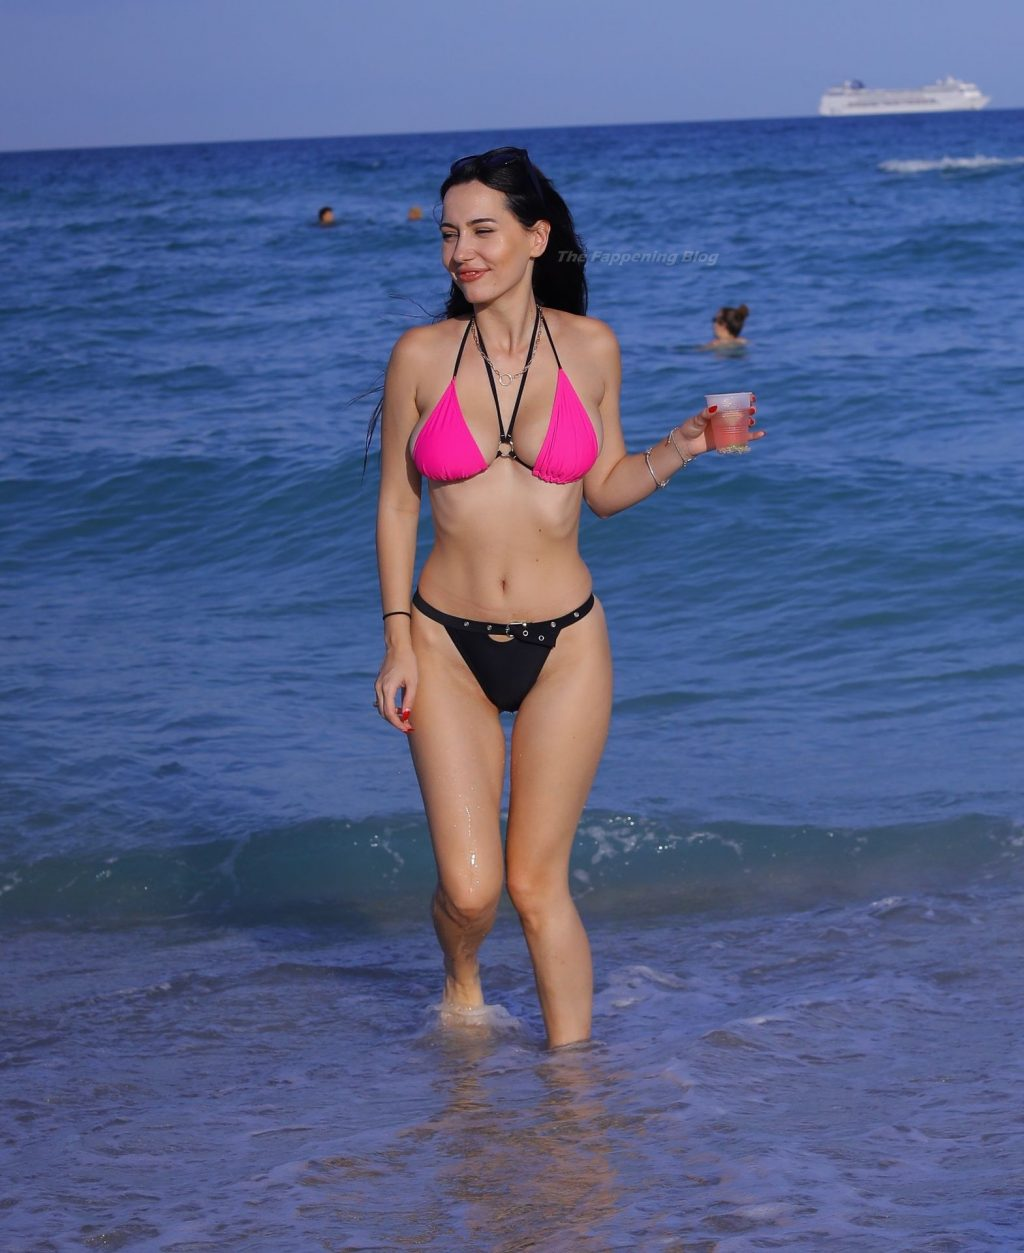 Iva Kovacevic Shows Off Her Hot Body in a Bikini on the Beach in Miami